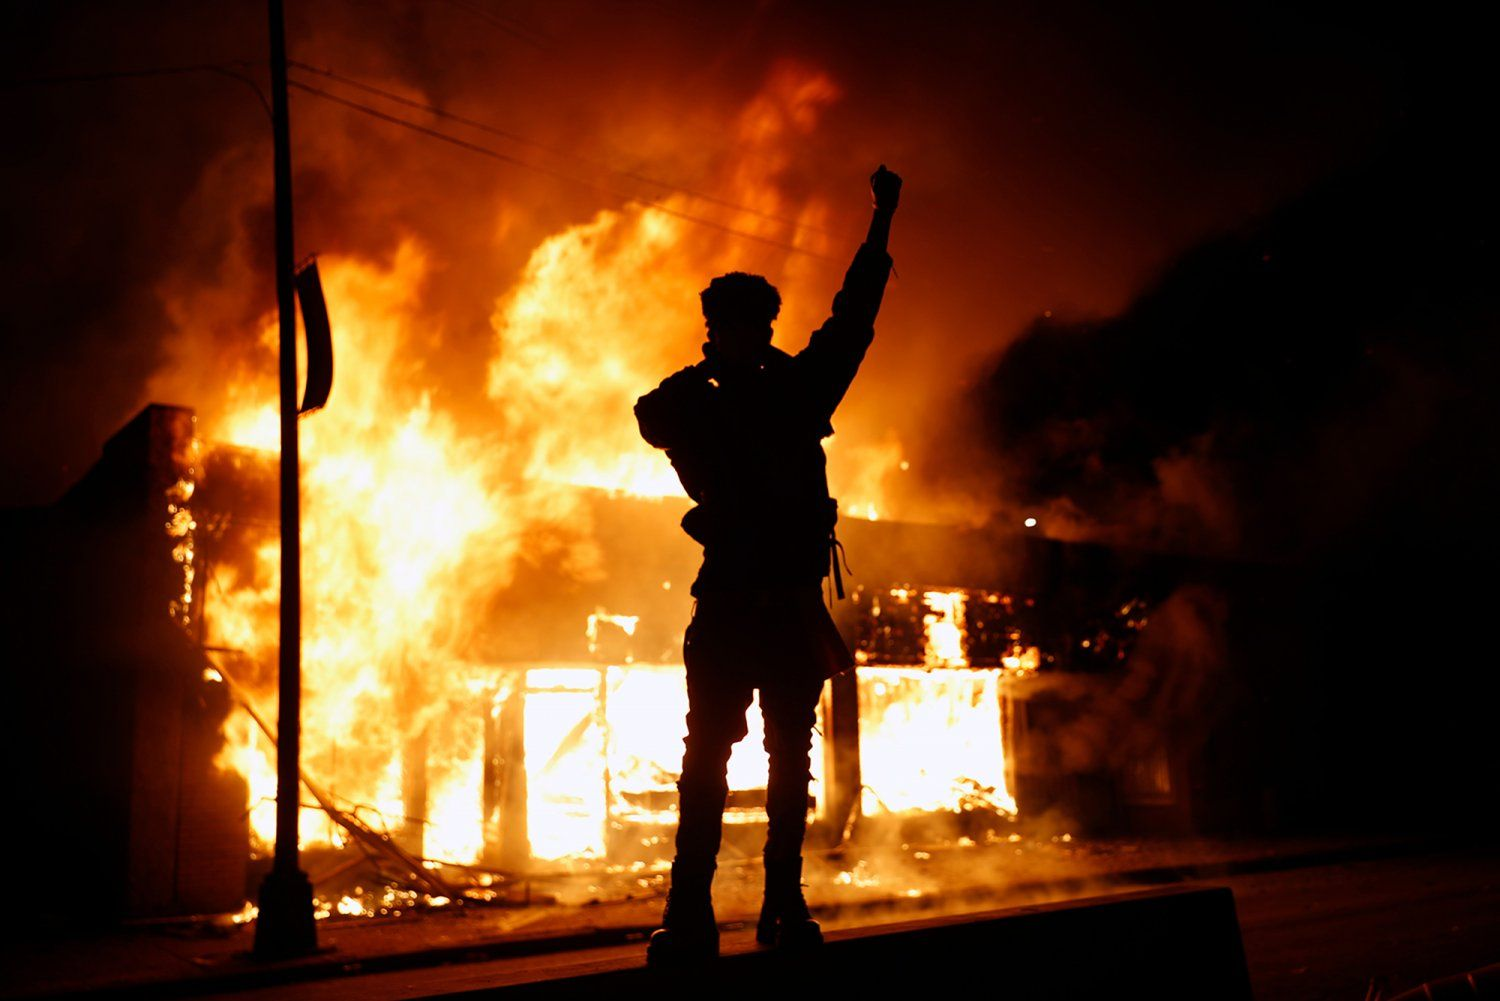 A check-cashing business burns during protests in Minneapolis on Friday.jpg